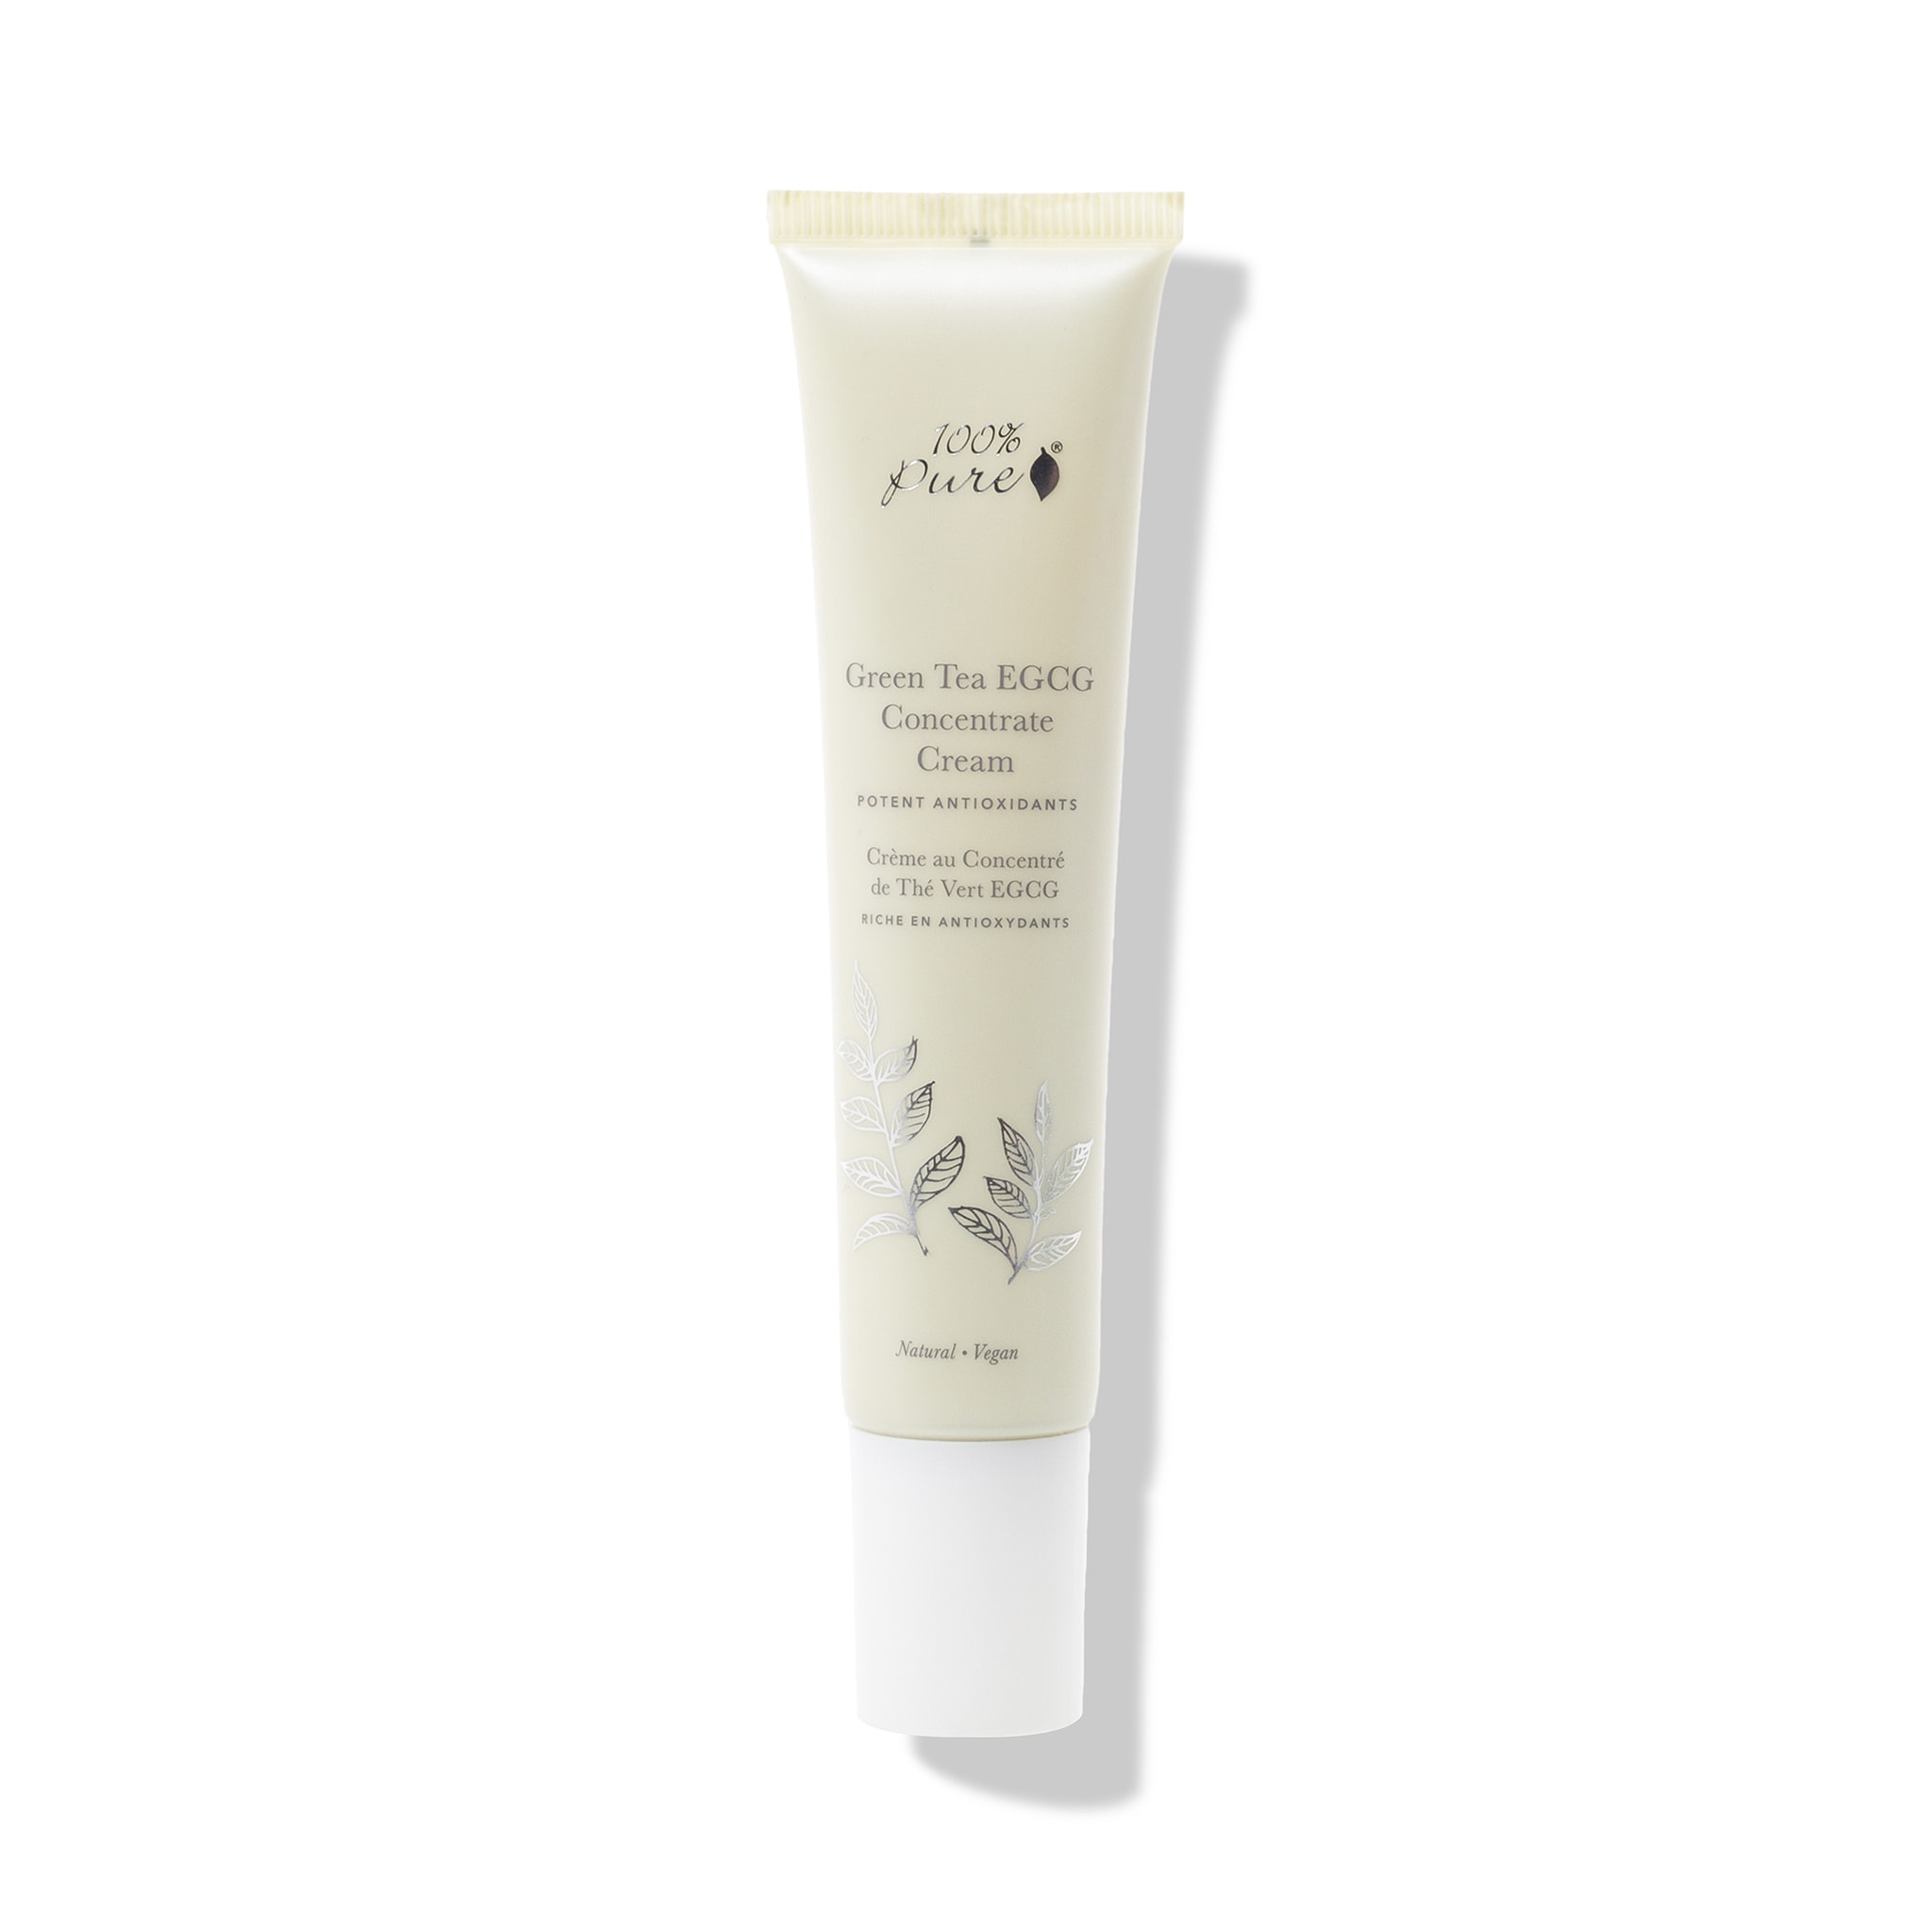 Product Grid - Green Tea EGCG Concentrate Cream